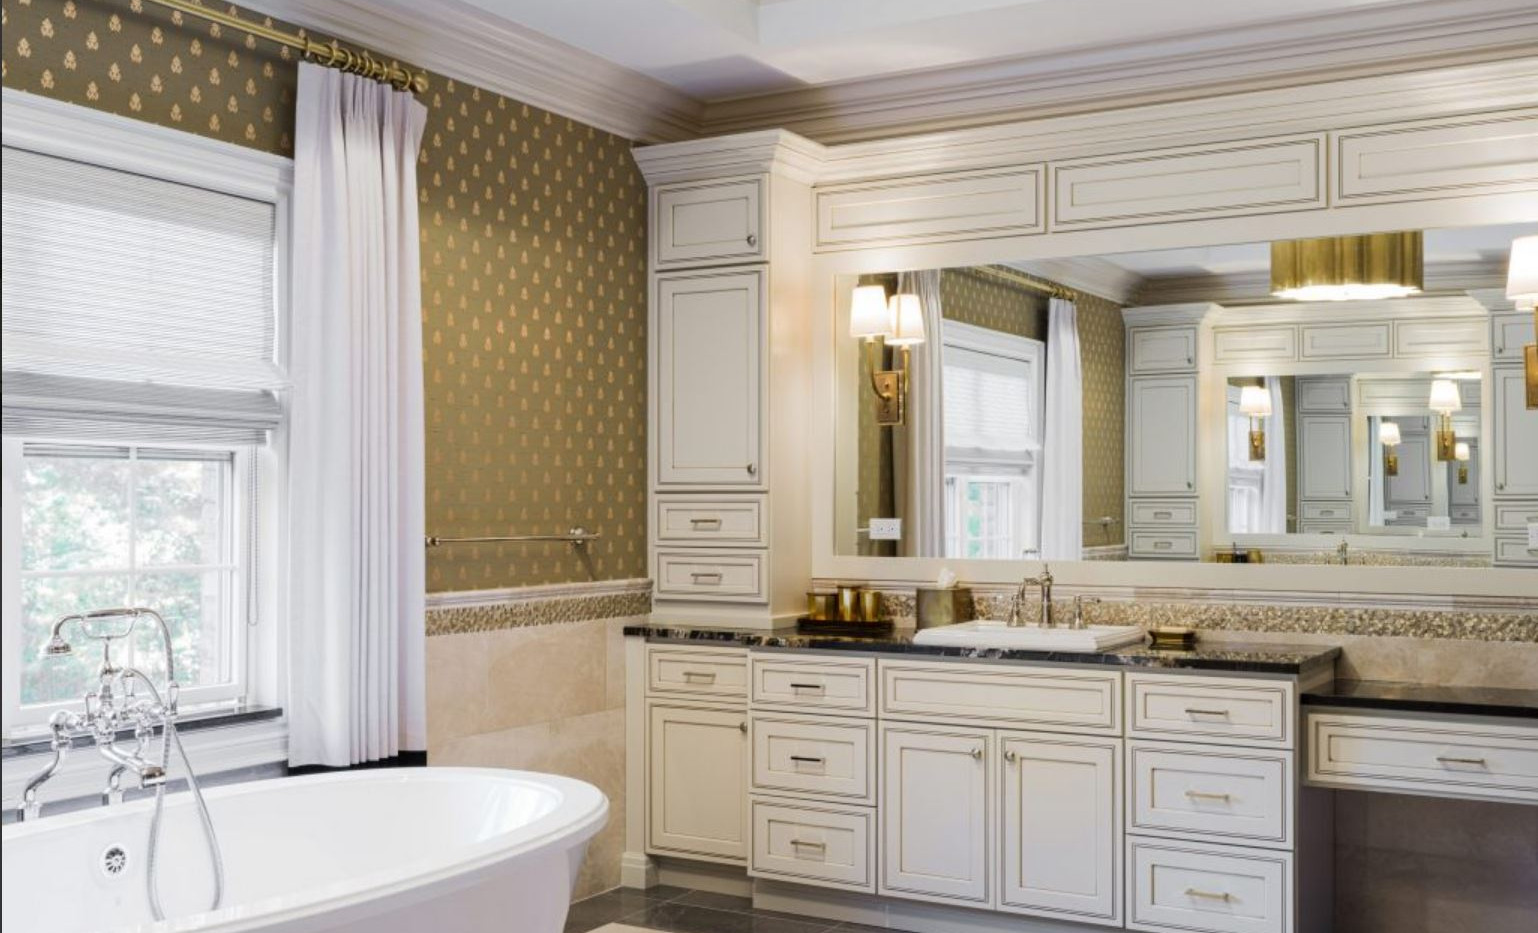 pearl glazed bathroom.JPG